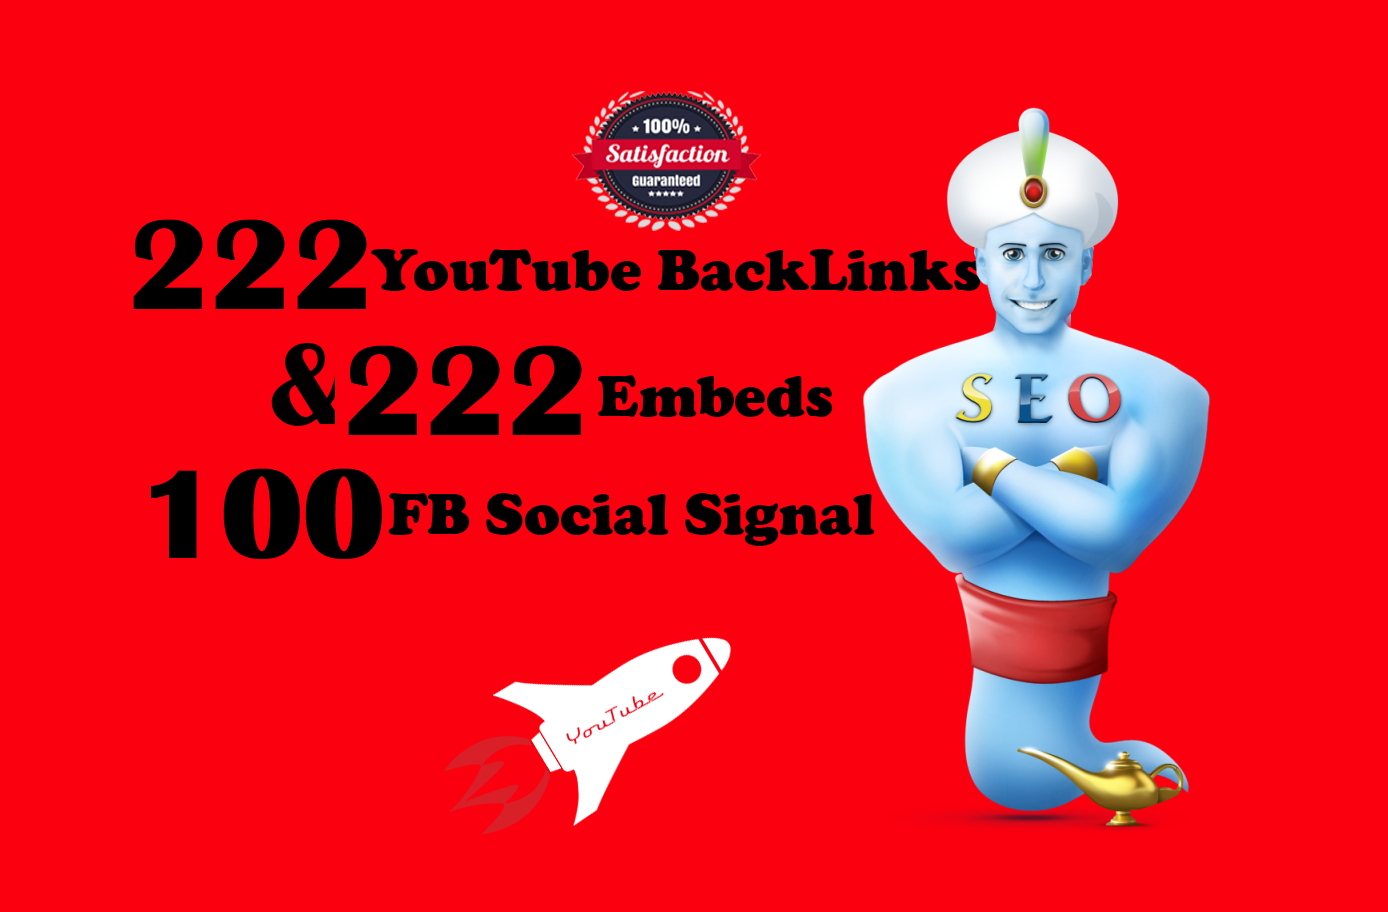 will 222 DoFollow BackLink with 222 Video Embeds + 100 Social Share - Organic Promotion